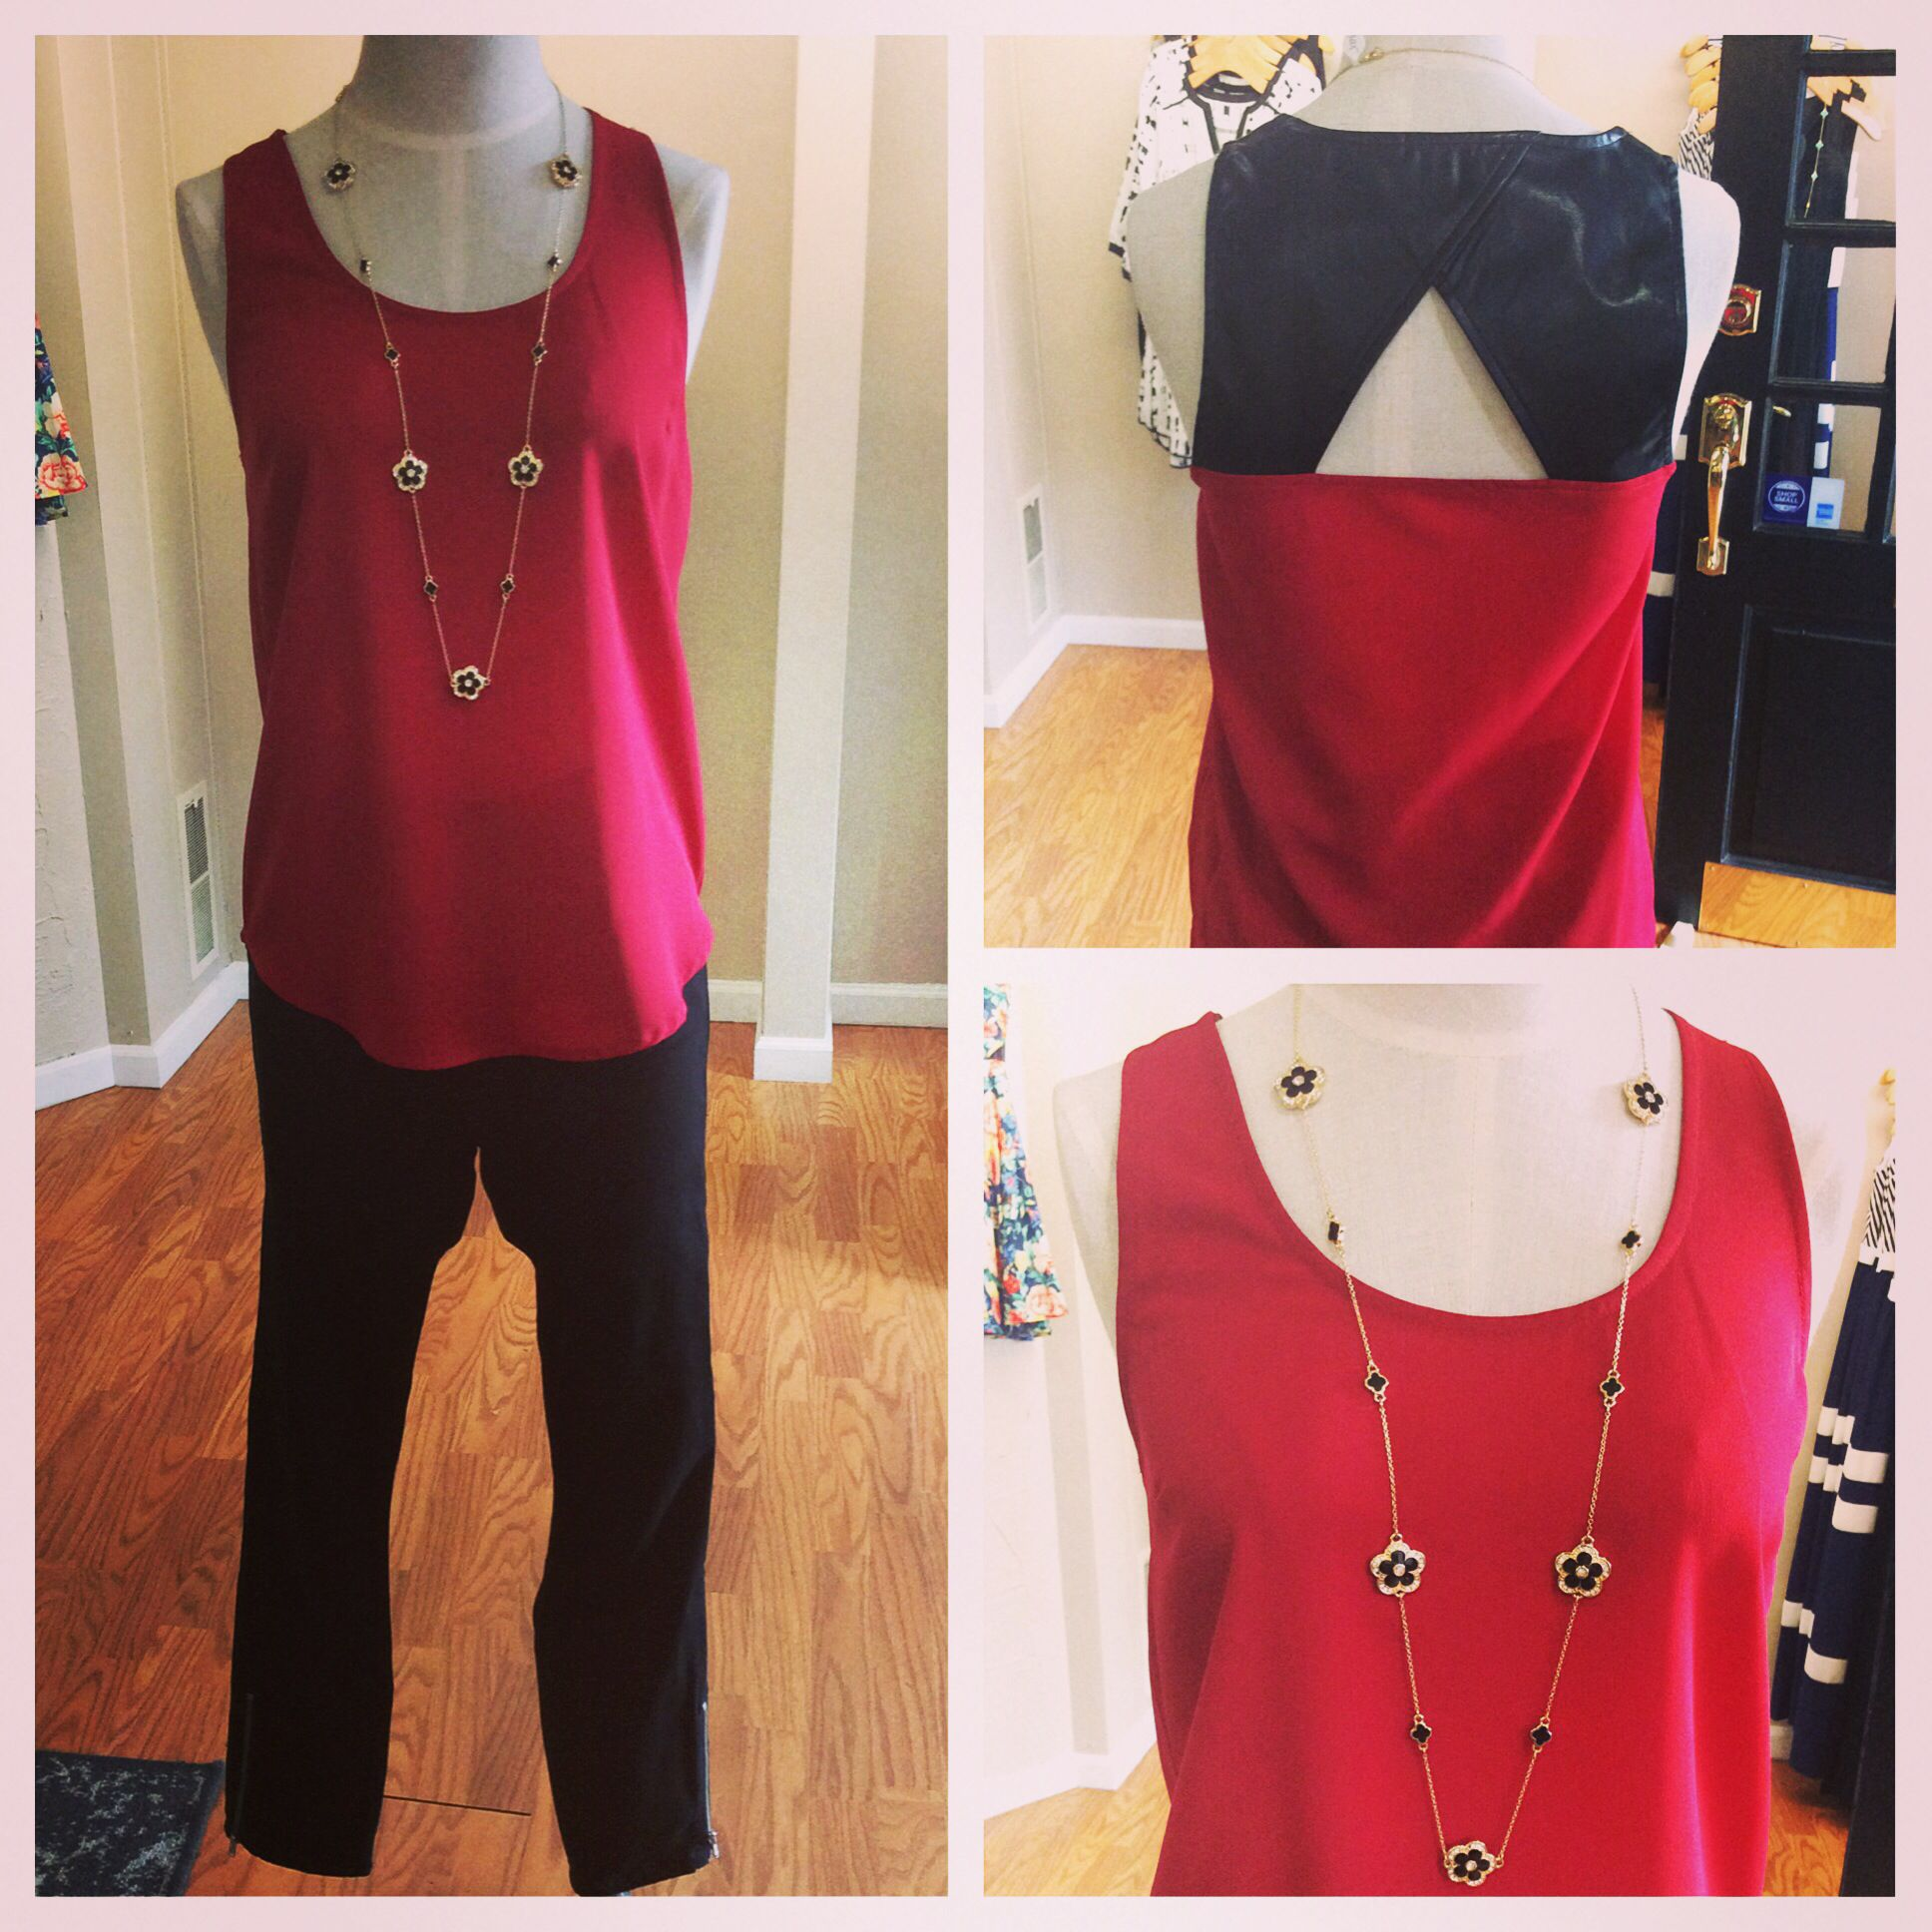 JAX Look of the Day! Cropped jeans are perfect year round to wear with wedges or heels when it's warm and easily tuck into boots for the fall. They look great now into fall with a faux leather detail tank from Jack by BB Dakota and this fun long flower and rhinestone necklace that will dress up any outfit! #jaxboutique #jaxhaddonfield #downtownhaddonfield #lookoftheday #bbdakota #level99